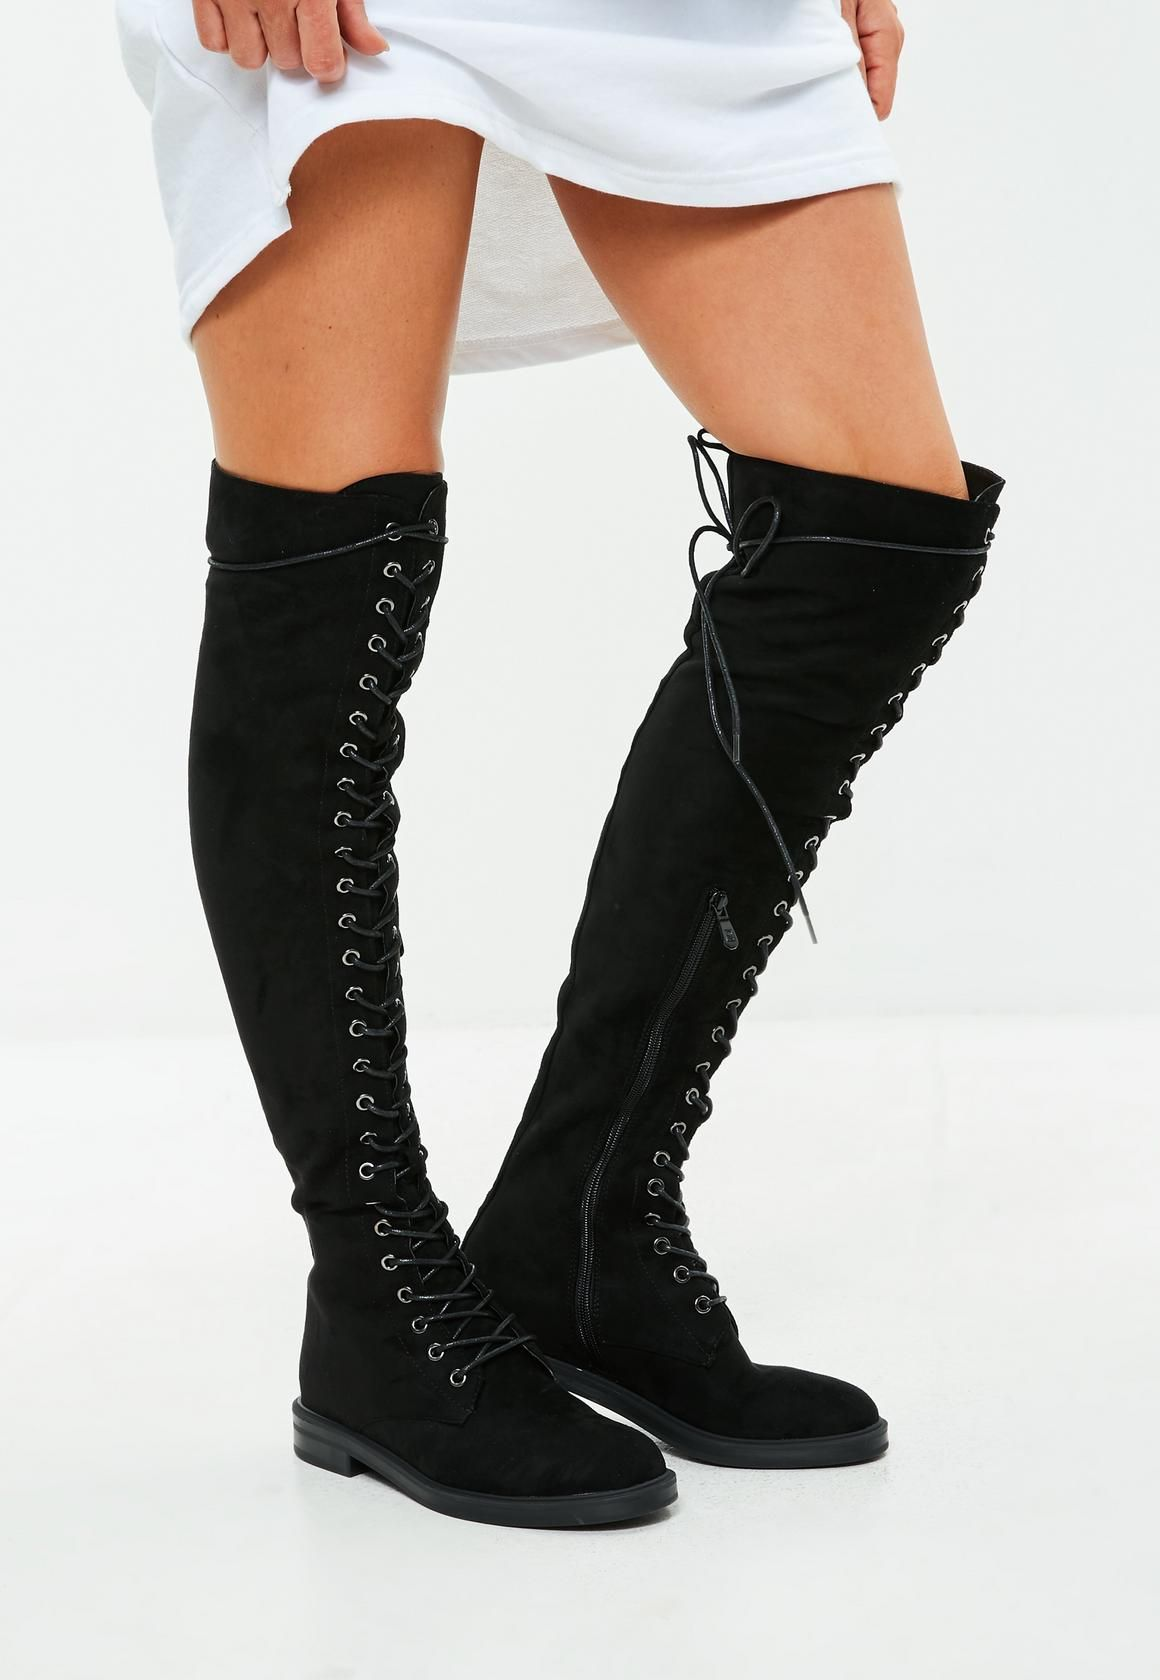 87650f16a21 Missguided - Black Lace Up Over The Knee Boots